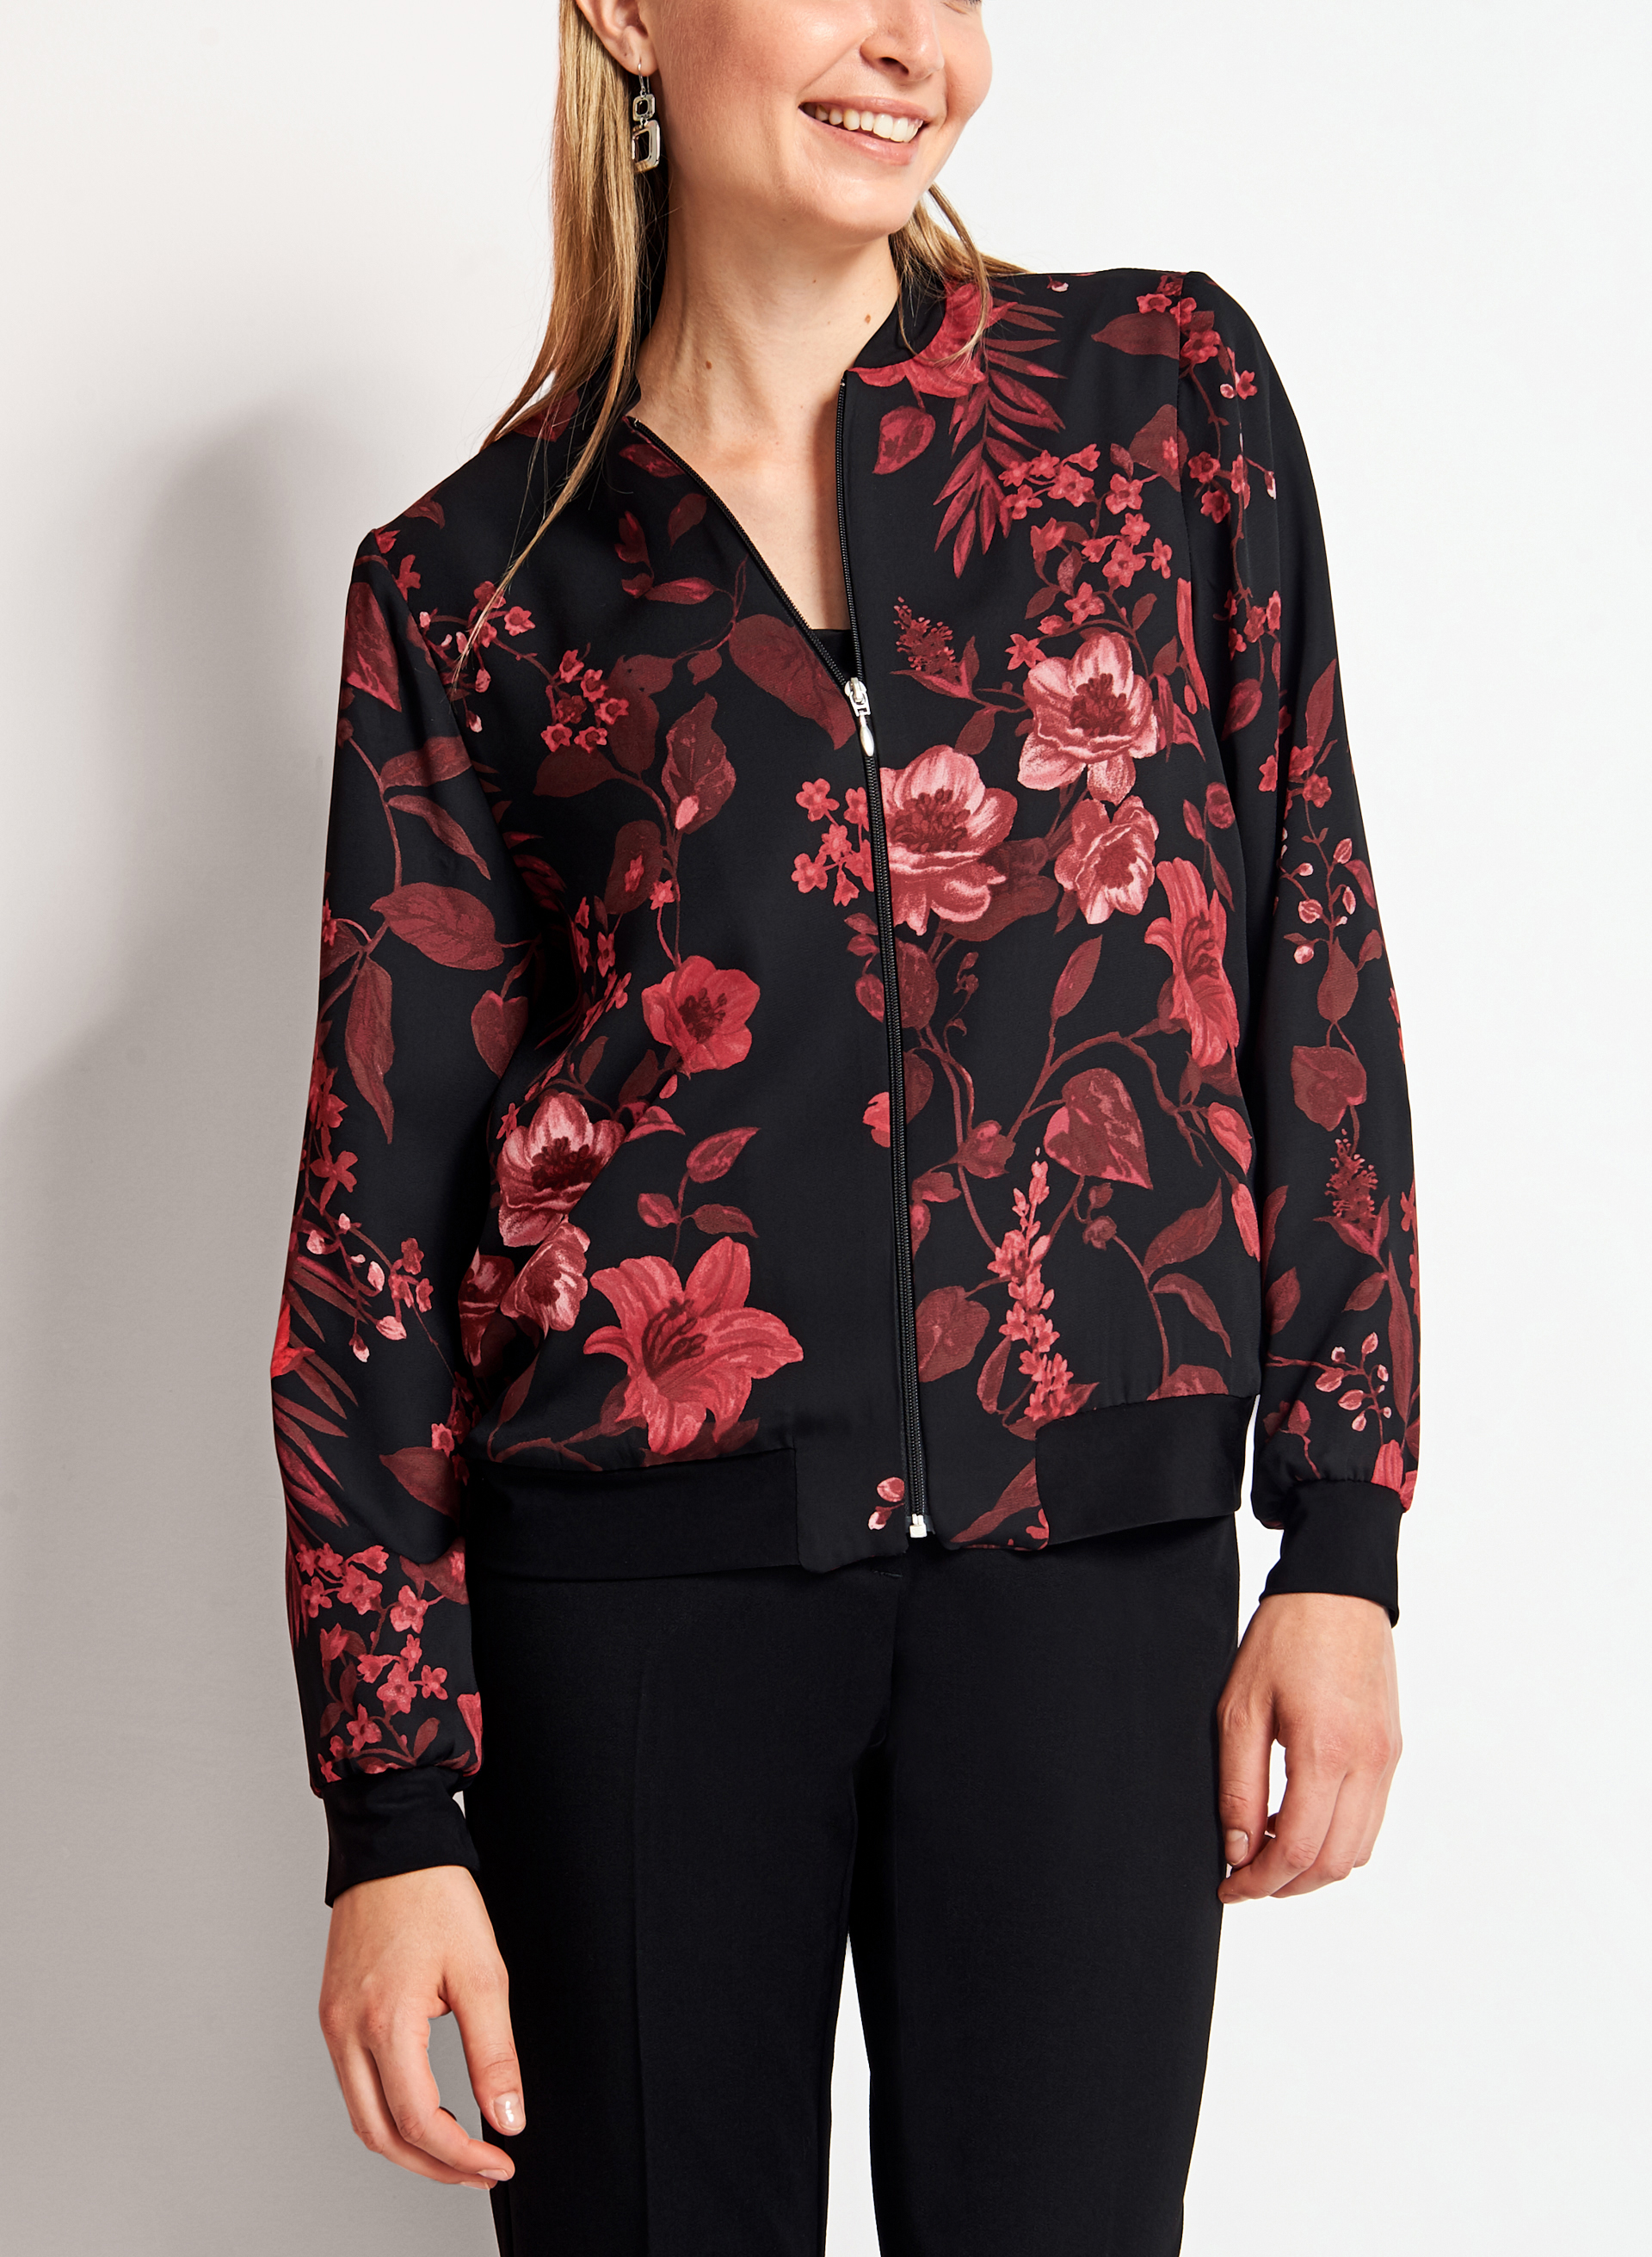 Floral Satin Bomber Jacket - Trending bomber jacket in glossy satin. Exquisite floral embroidery adds pops of color. Front slash welt accents. Rib-knit collar, cuffs .